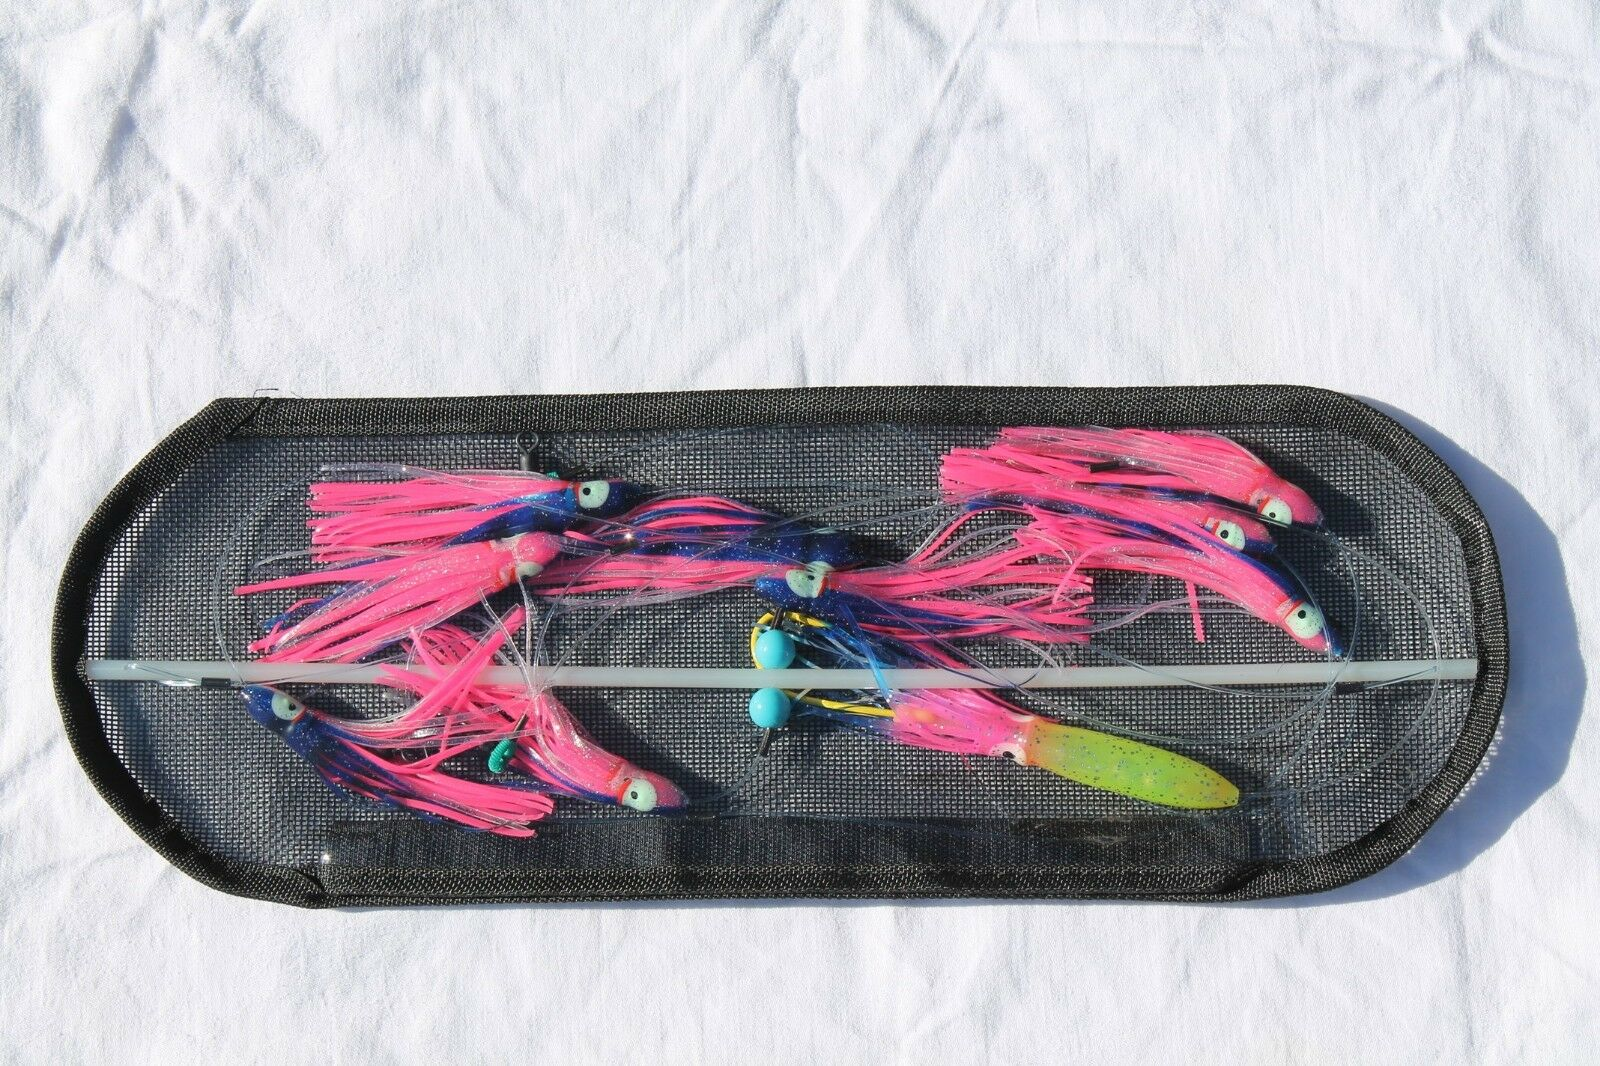 18-inch Flexible Spreader Bar w  blueE and PINK Squids, Hook Lure and Storage Bag